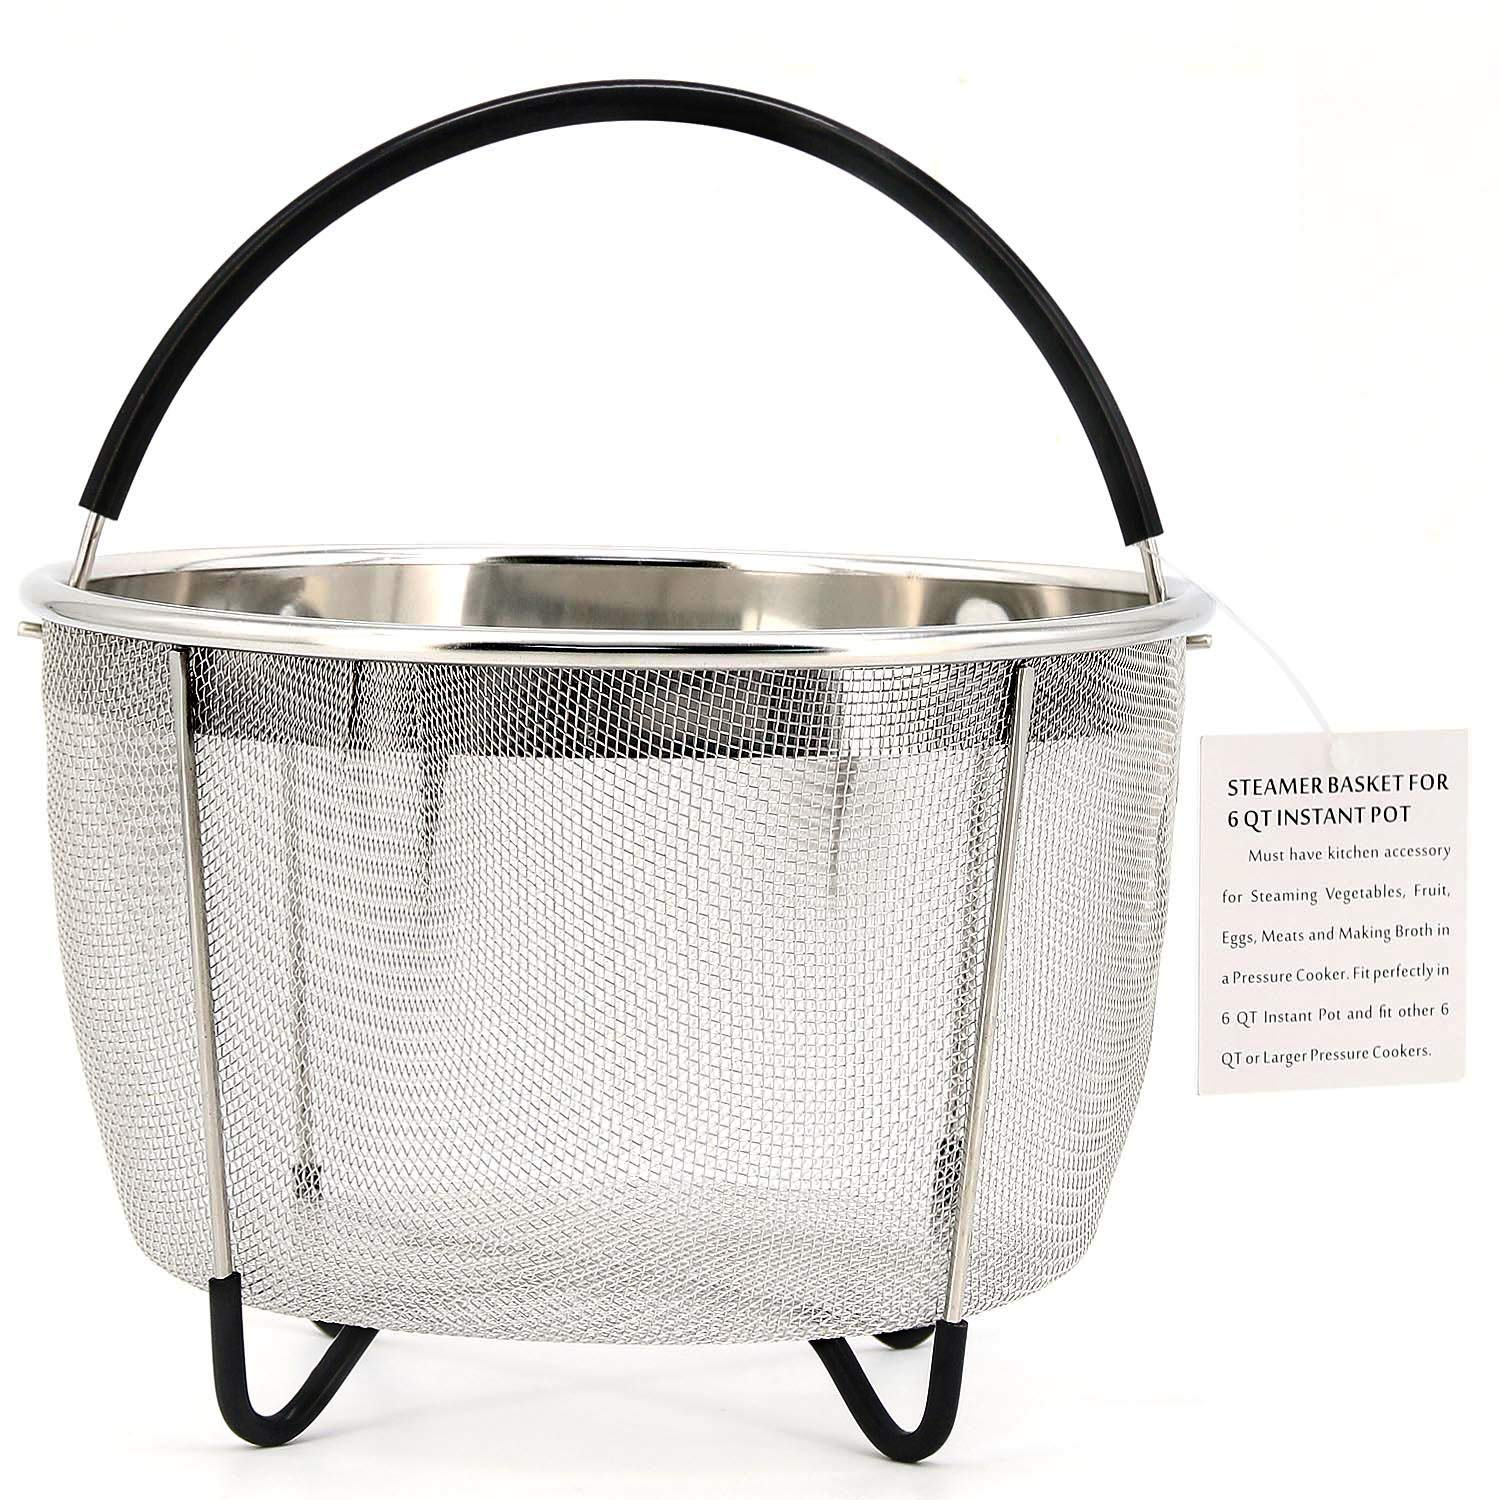 Bonison Stainless Steel Steamer Basket for Instant Pot, with Silicone Wrapped Handle, Custom Fit for 5/6 QT or 8 QT InstaPot Pressure Cooker. Perfect for Steam Egg, Meat, Veggie. (6 QT)